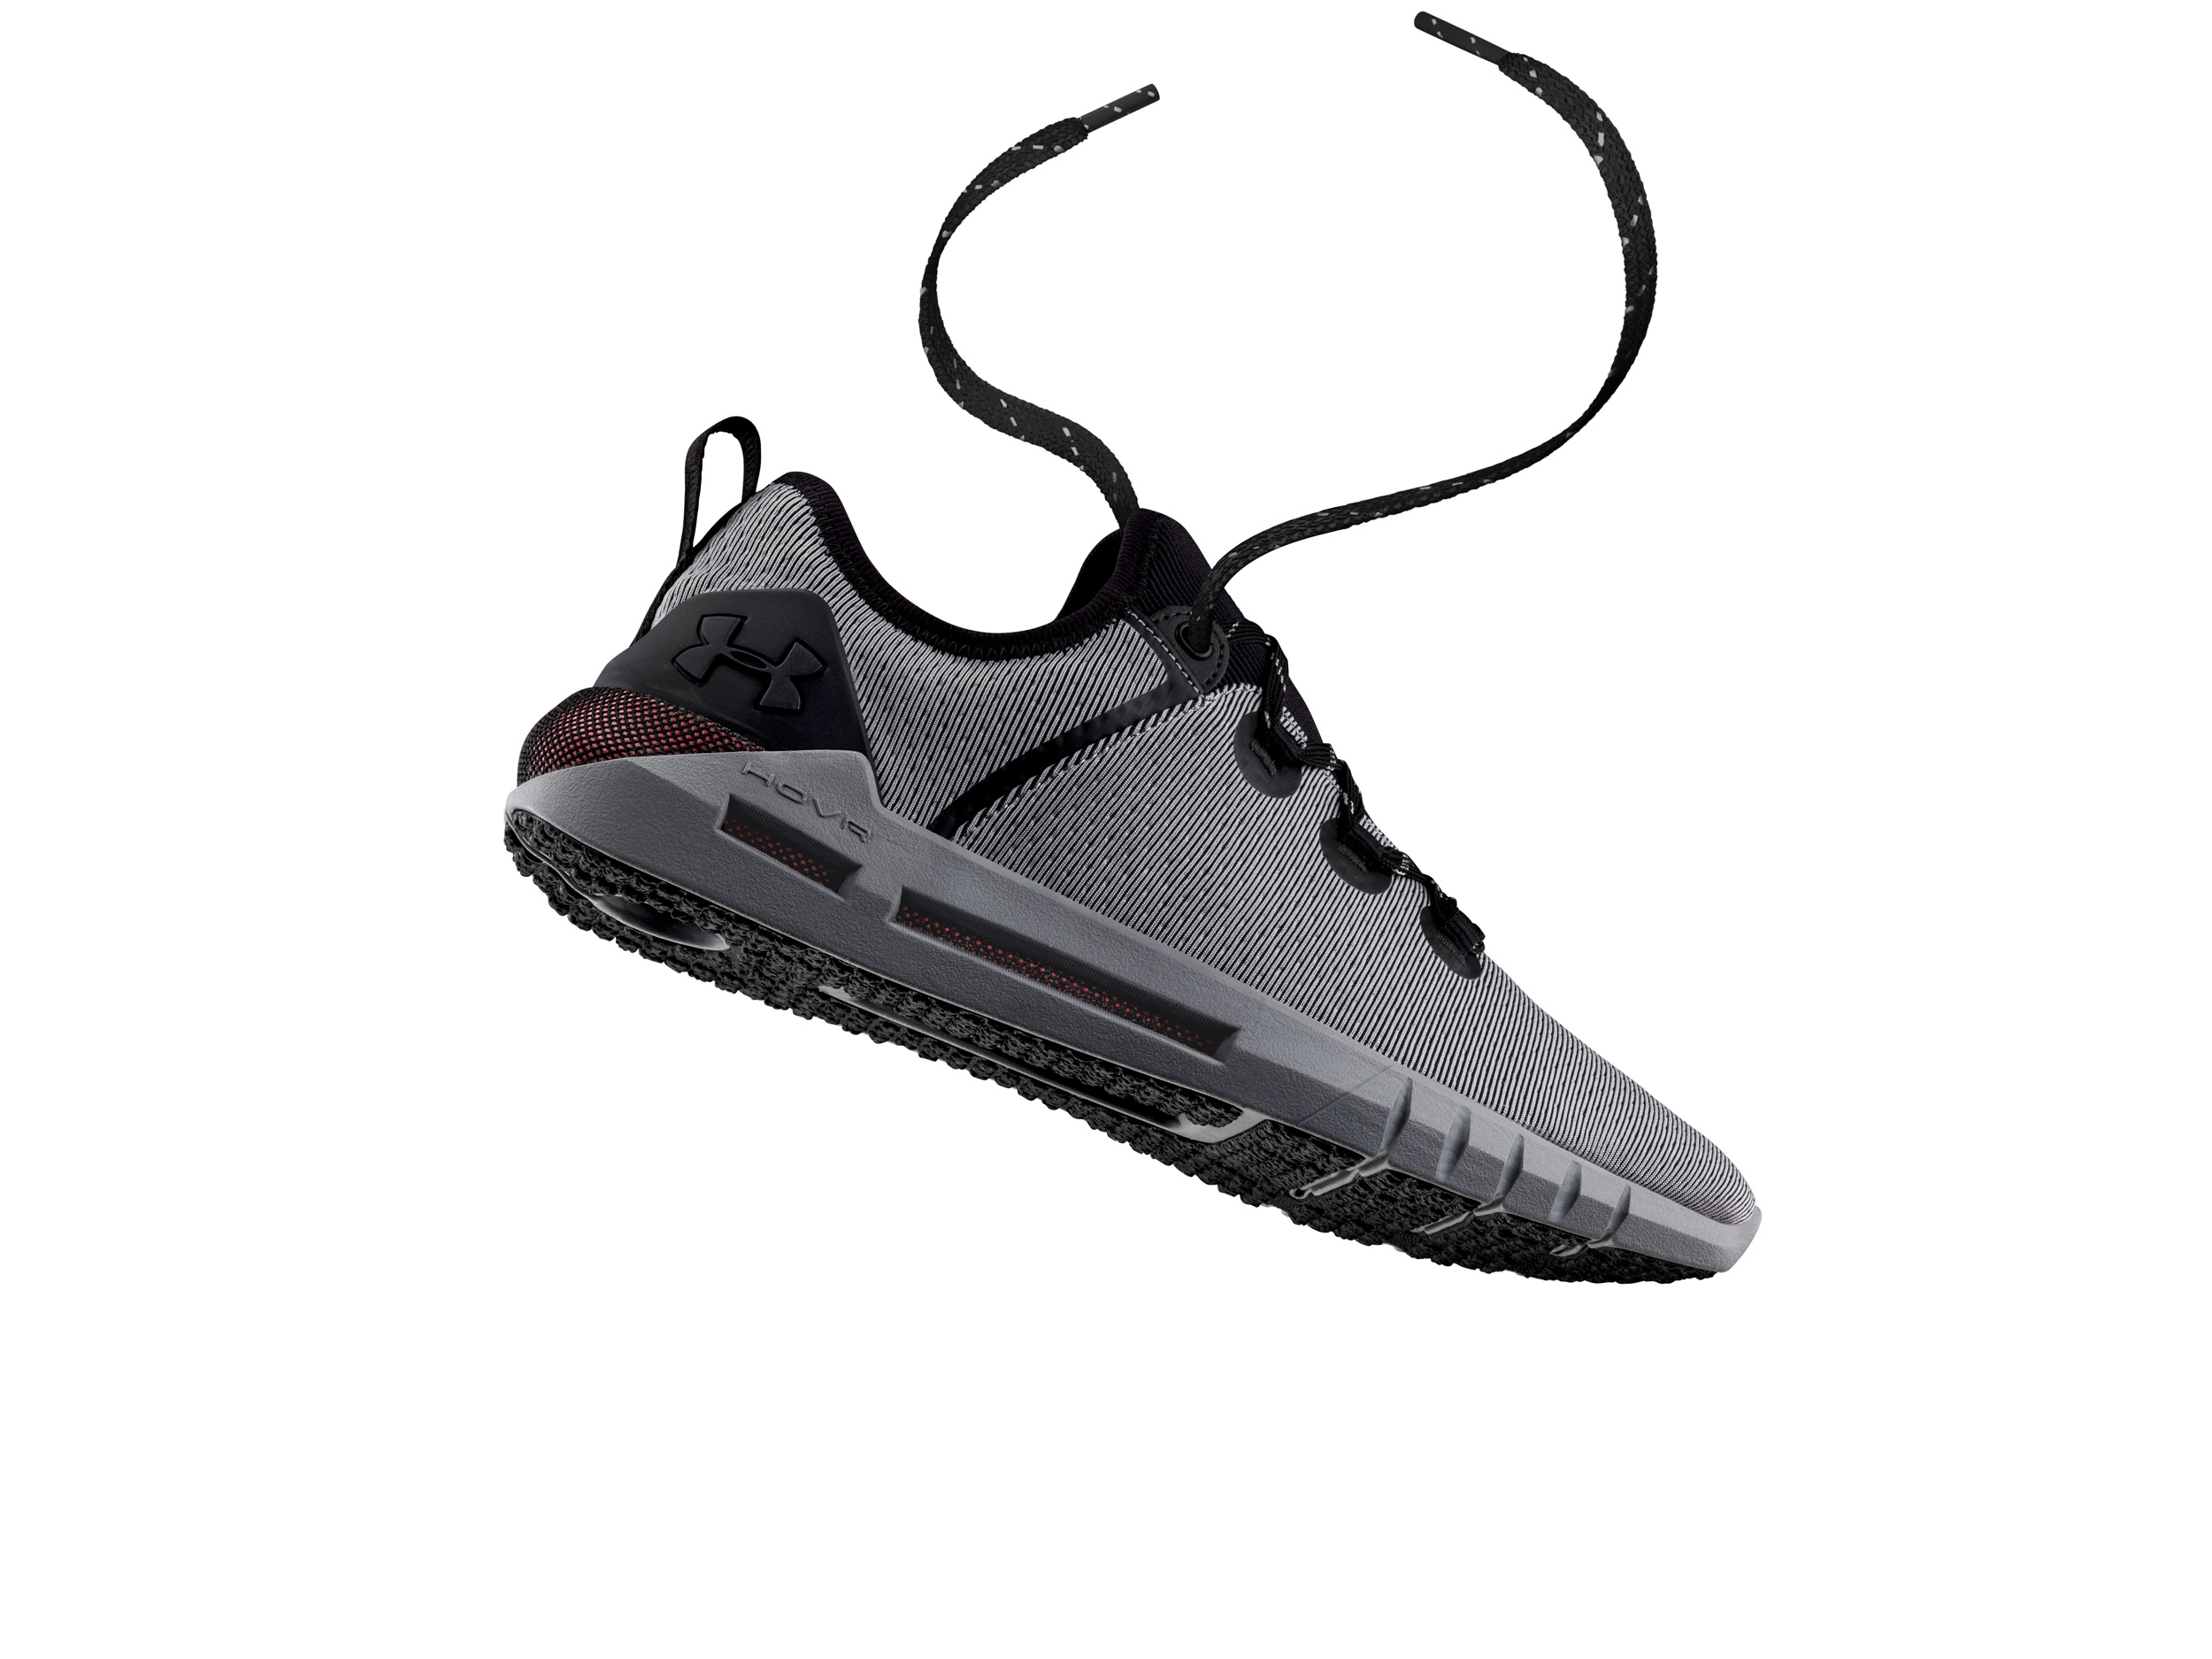 52c24837 Under Armour Introduces the HOVR SLK, a Lifestyle Shoe - WearTesters